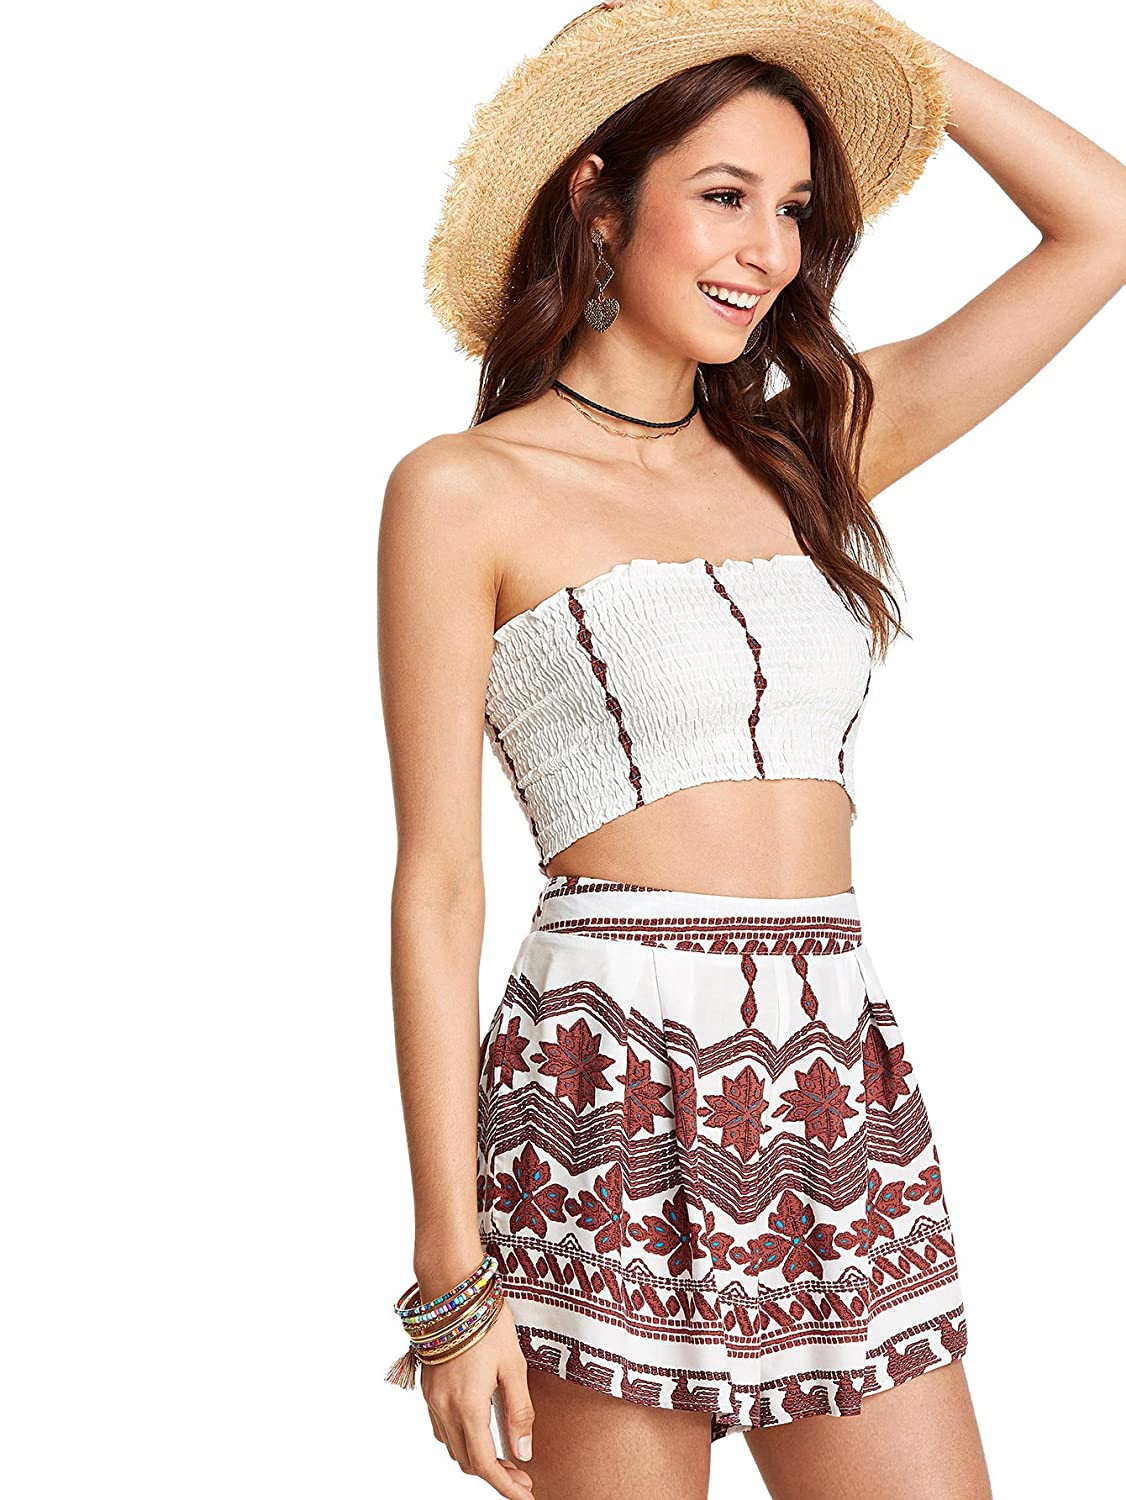 133062adaa2 Amazon.com  SweatyRocks Women s 2 Piece Outfit Boho Pleated Crop Tube Top  with Shorts White L  Clothing